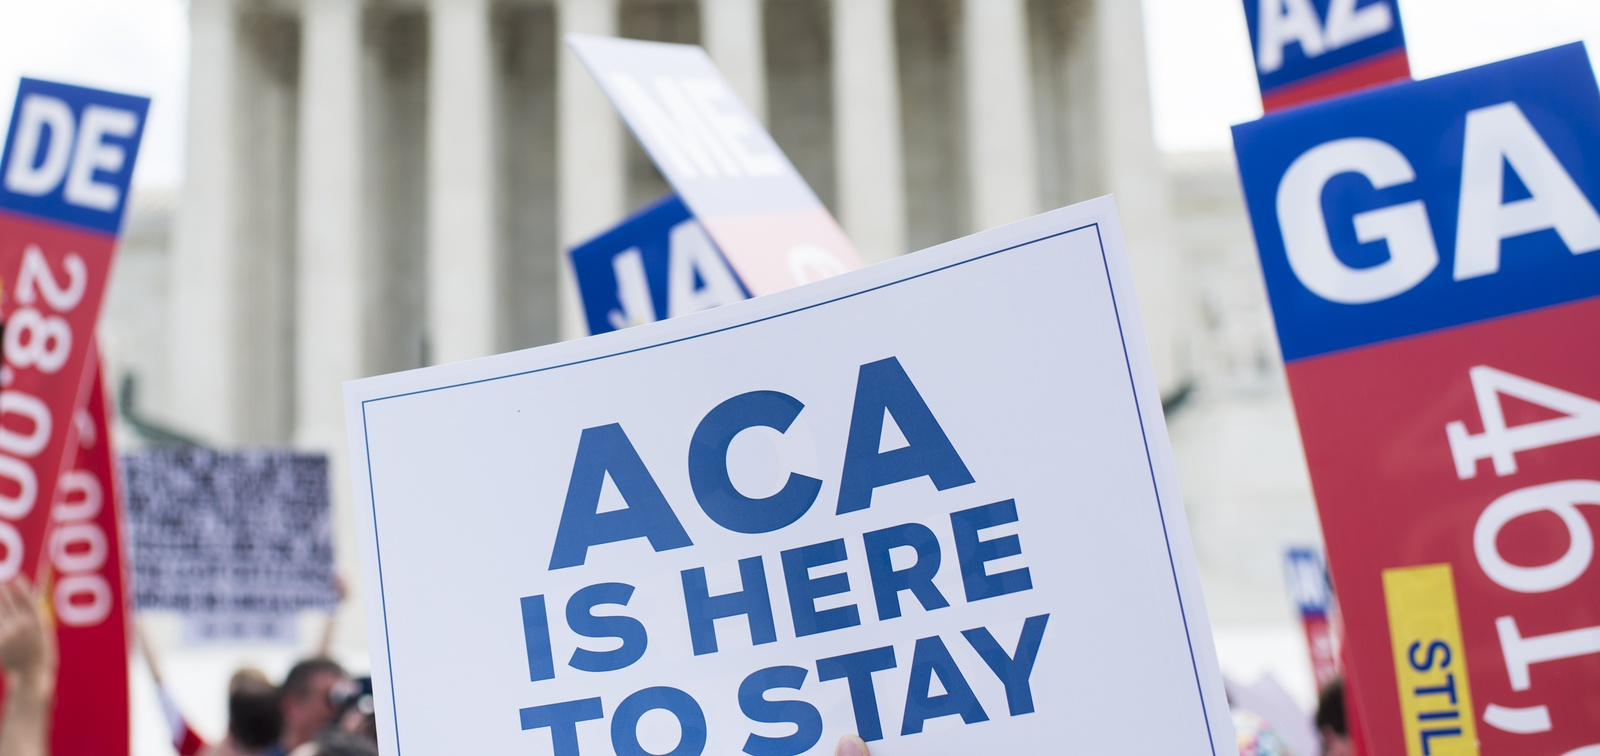 No leg to stand on? Supreme Court justices harp on key legal concept in ACA case